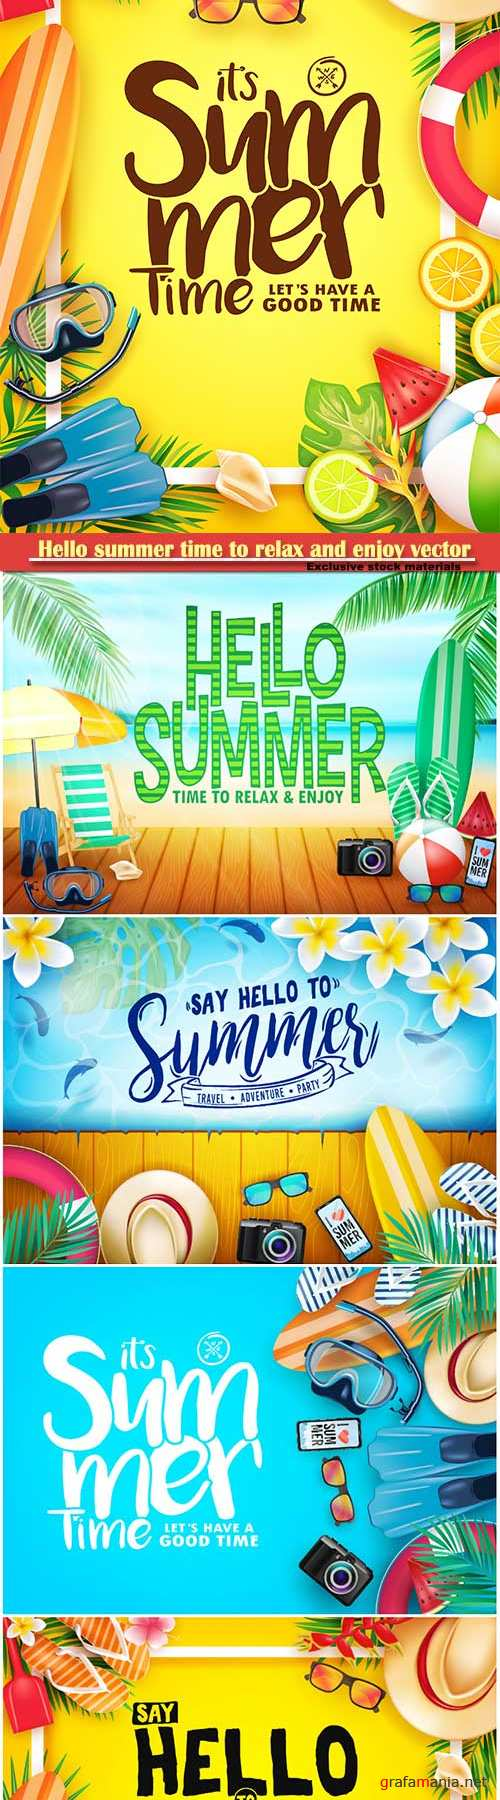 Hello summer time to relax and enjoy vector illustration